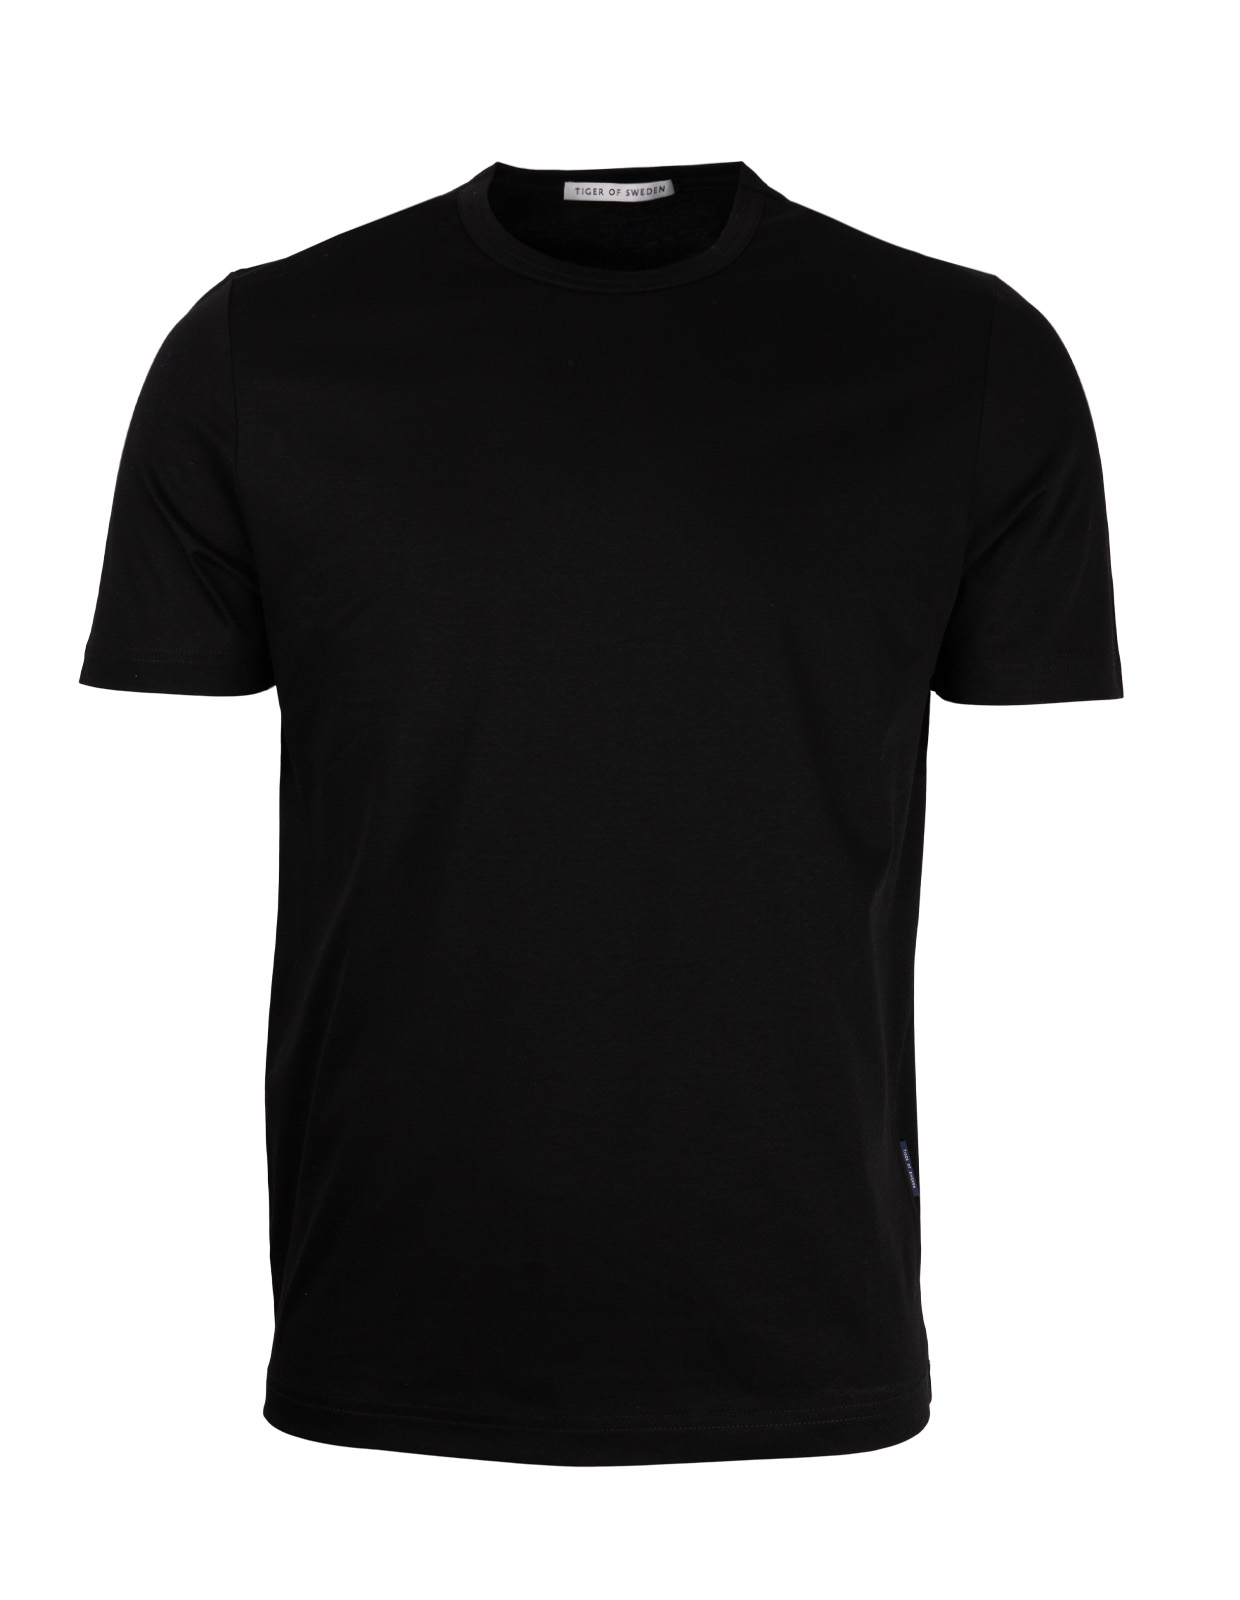 Olaf T-shirt Black